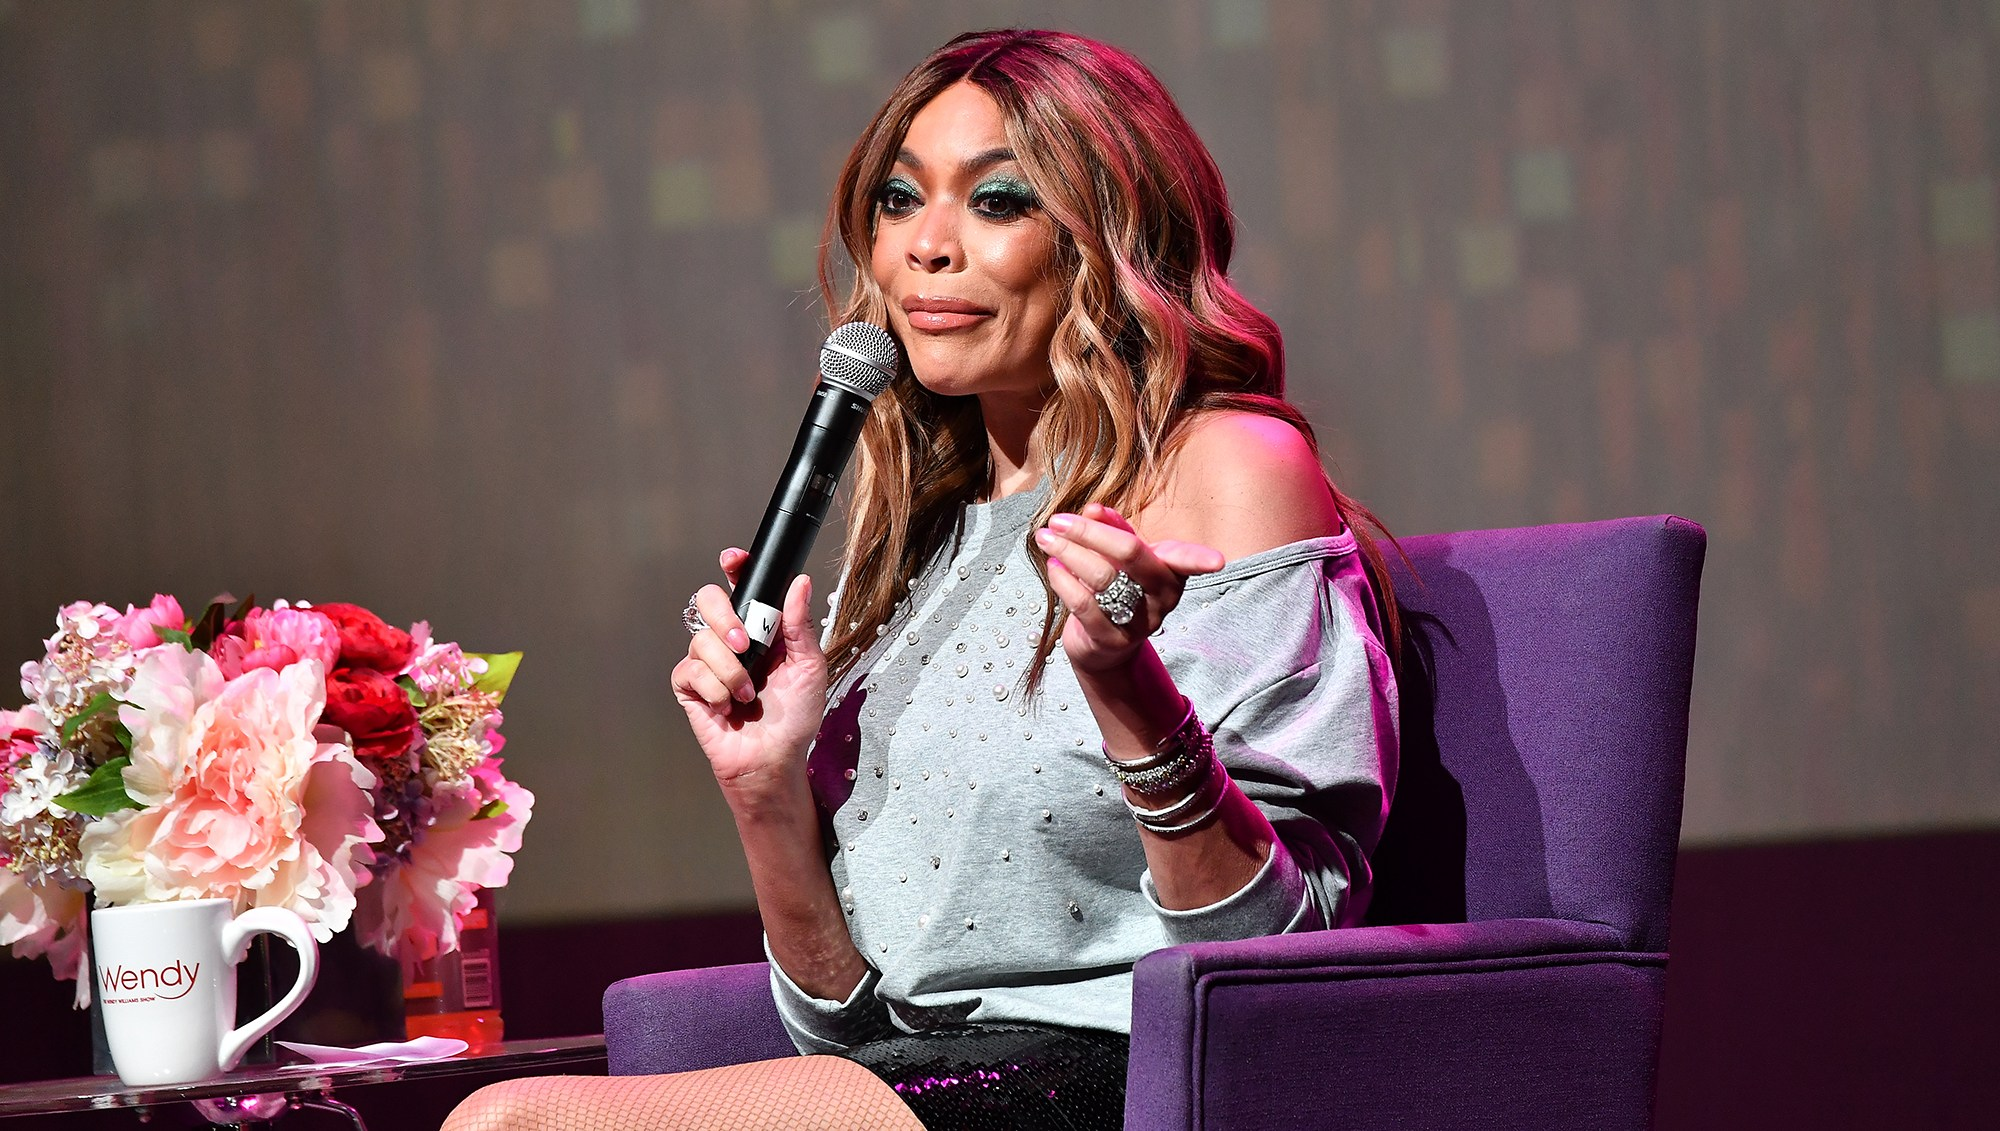 Wendy Williams Is '100 Percent Not Involved' in Show Changes, Guest Hosts